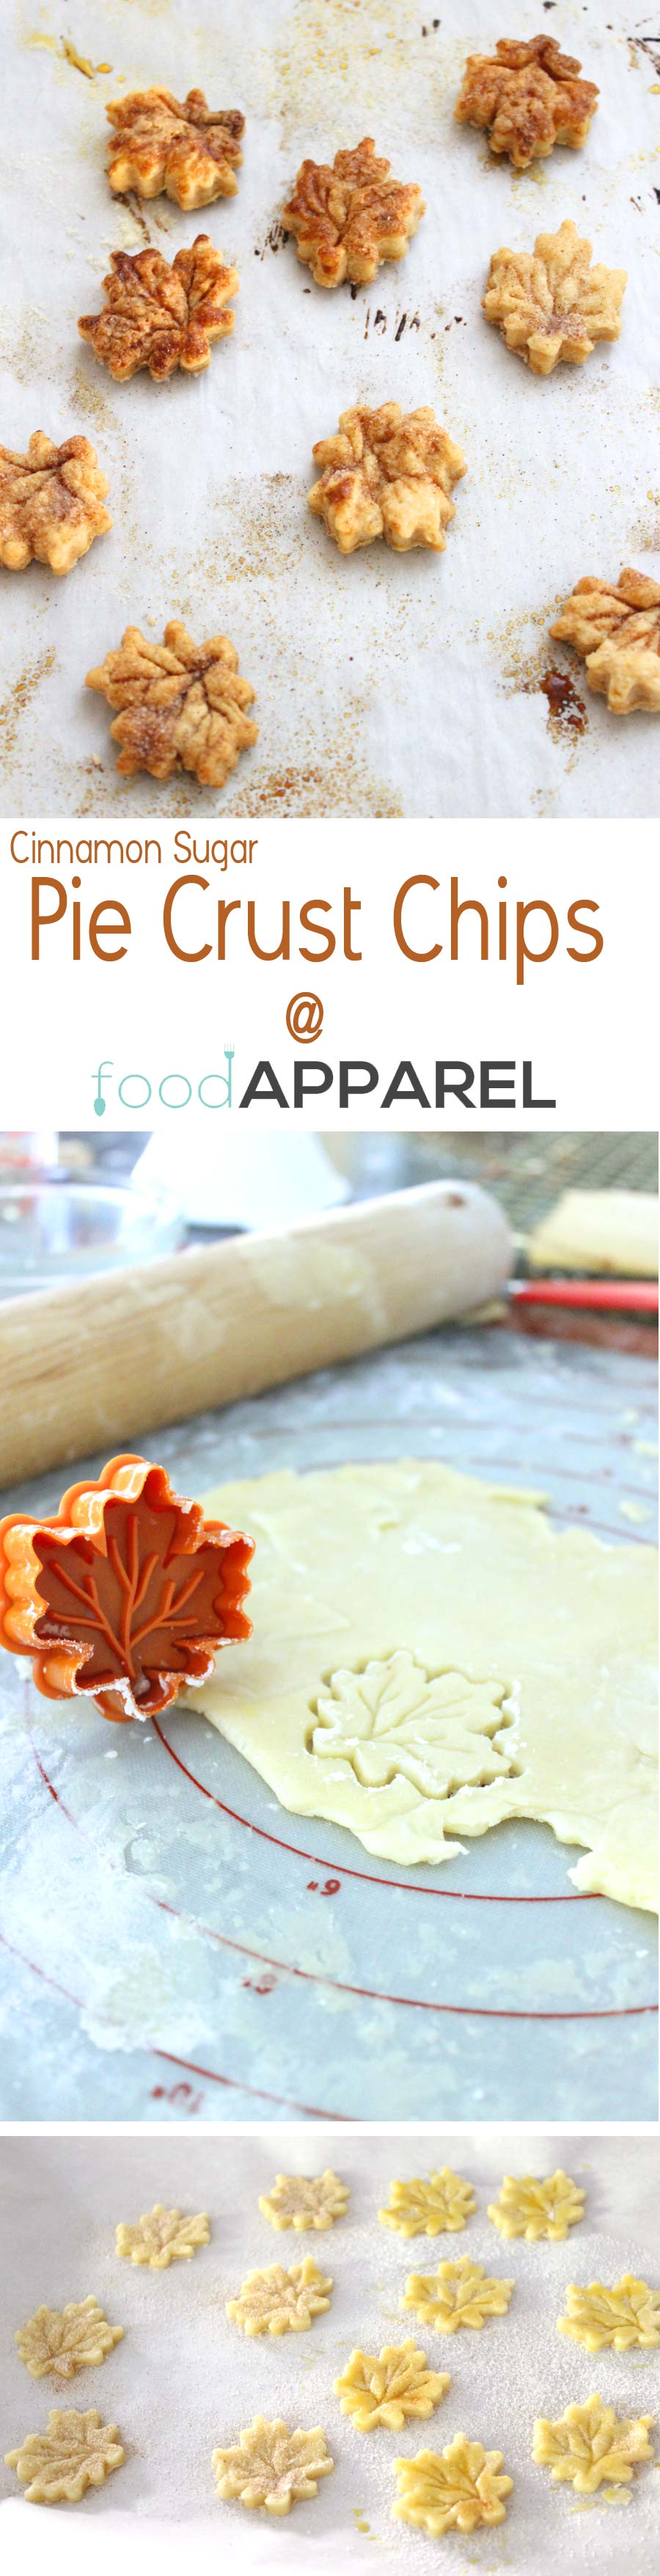 The cutest cinnamon sugar pie crust chips! Now you can enjoy your pie crust scraps with style @foodapparel